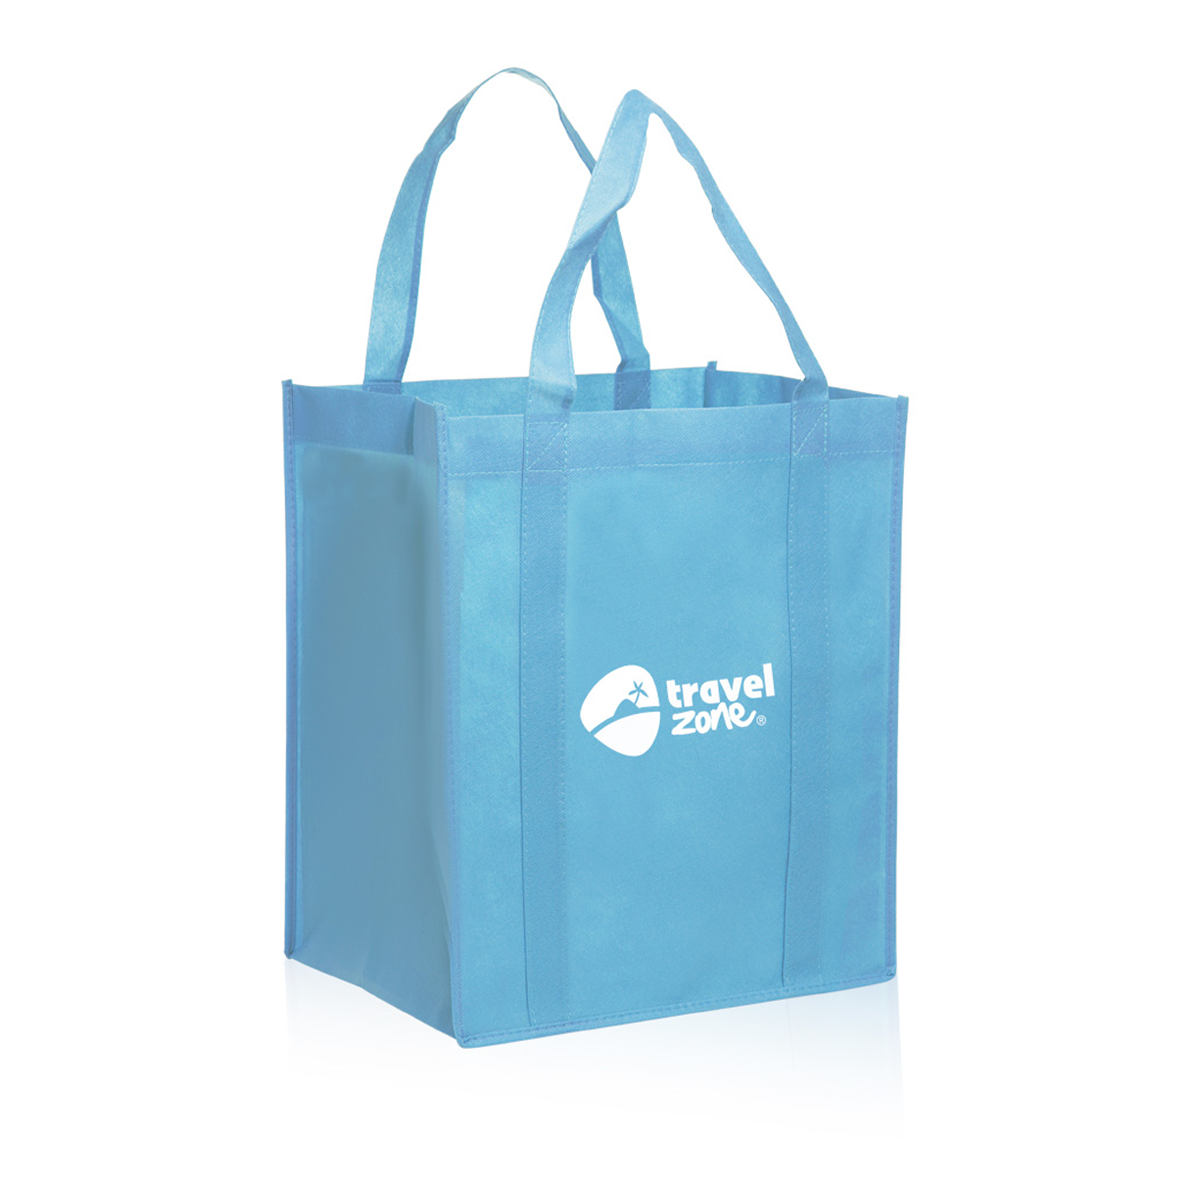 Tote bag in bulk -  Picture Of Reusable Grocery Tote Bag 13 X 15 X 10